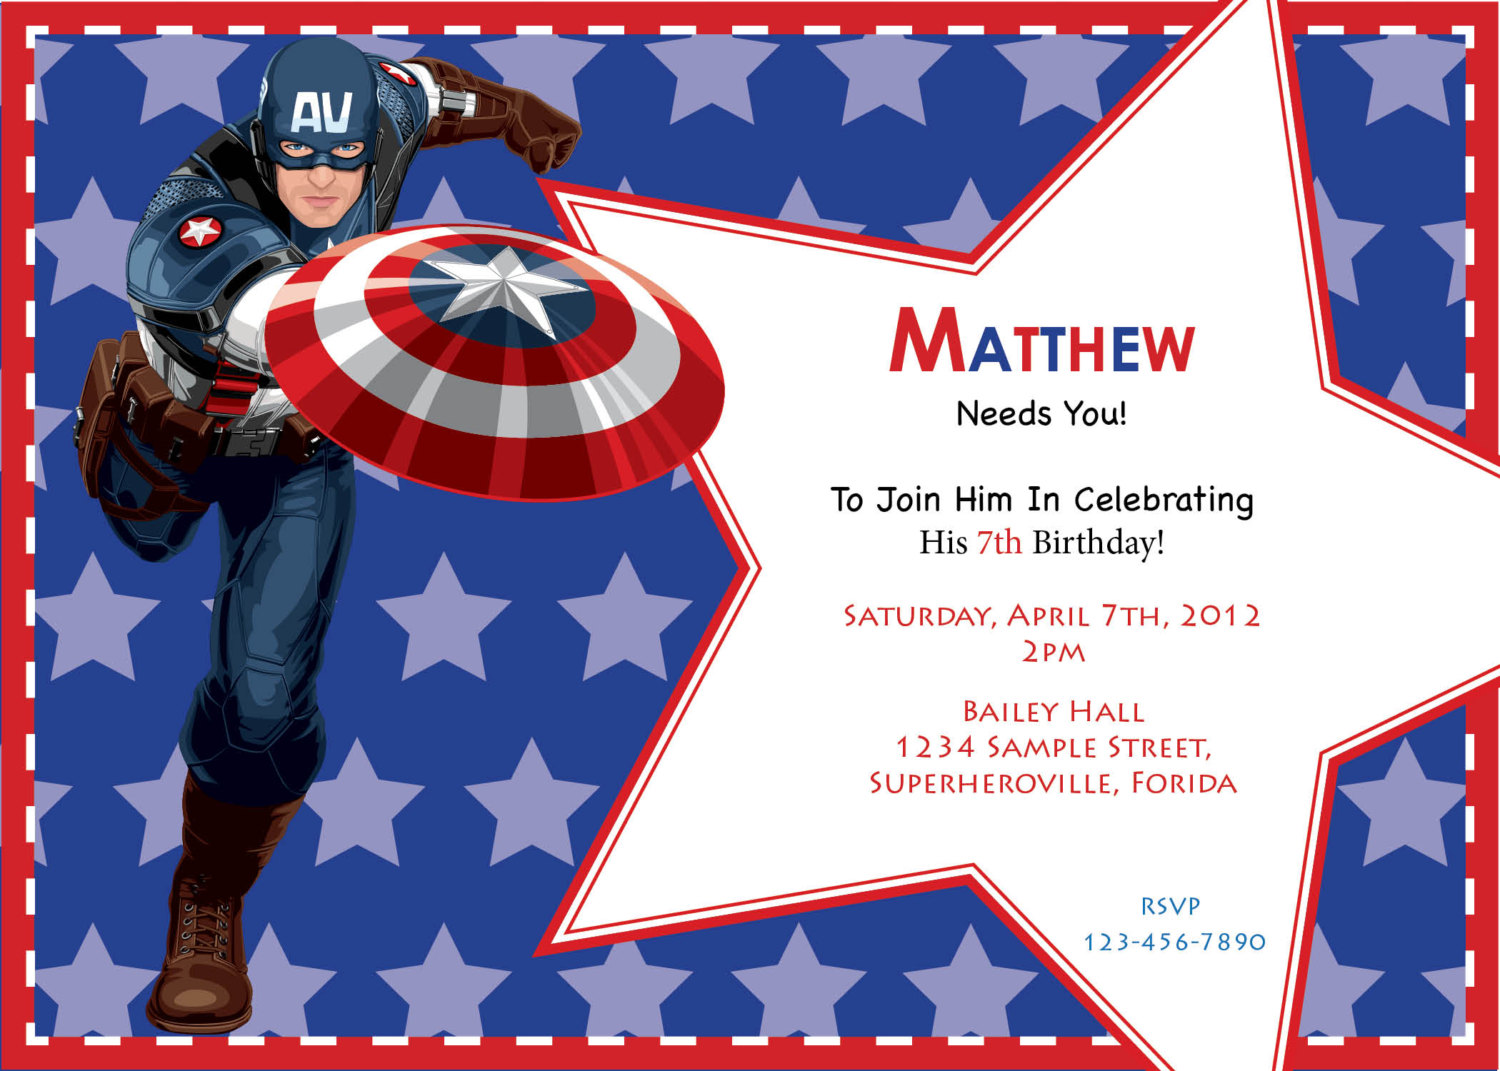 captain america birthday card template ; captain-america-birthday-invitations-together-with-a-picturesque-view-of-your-Birthday-Invitation-Templates-using-outstanding-invitations-7